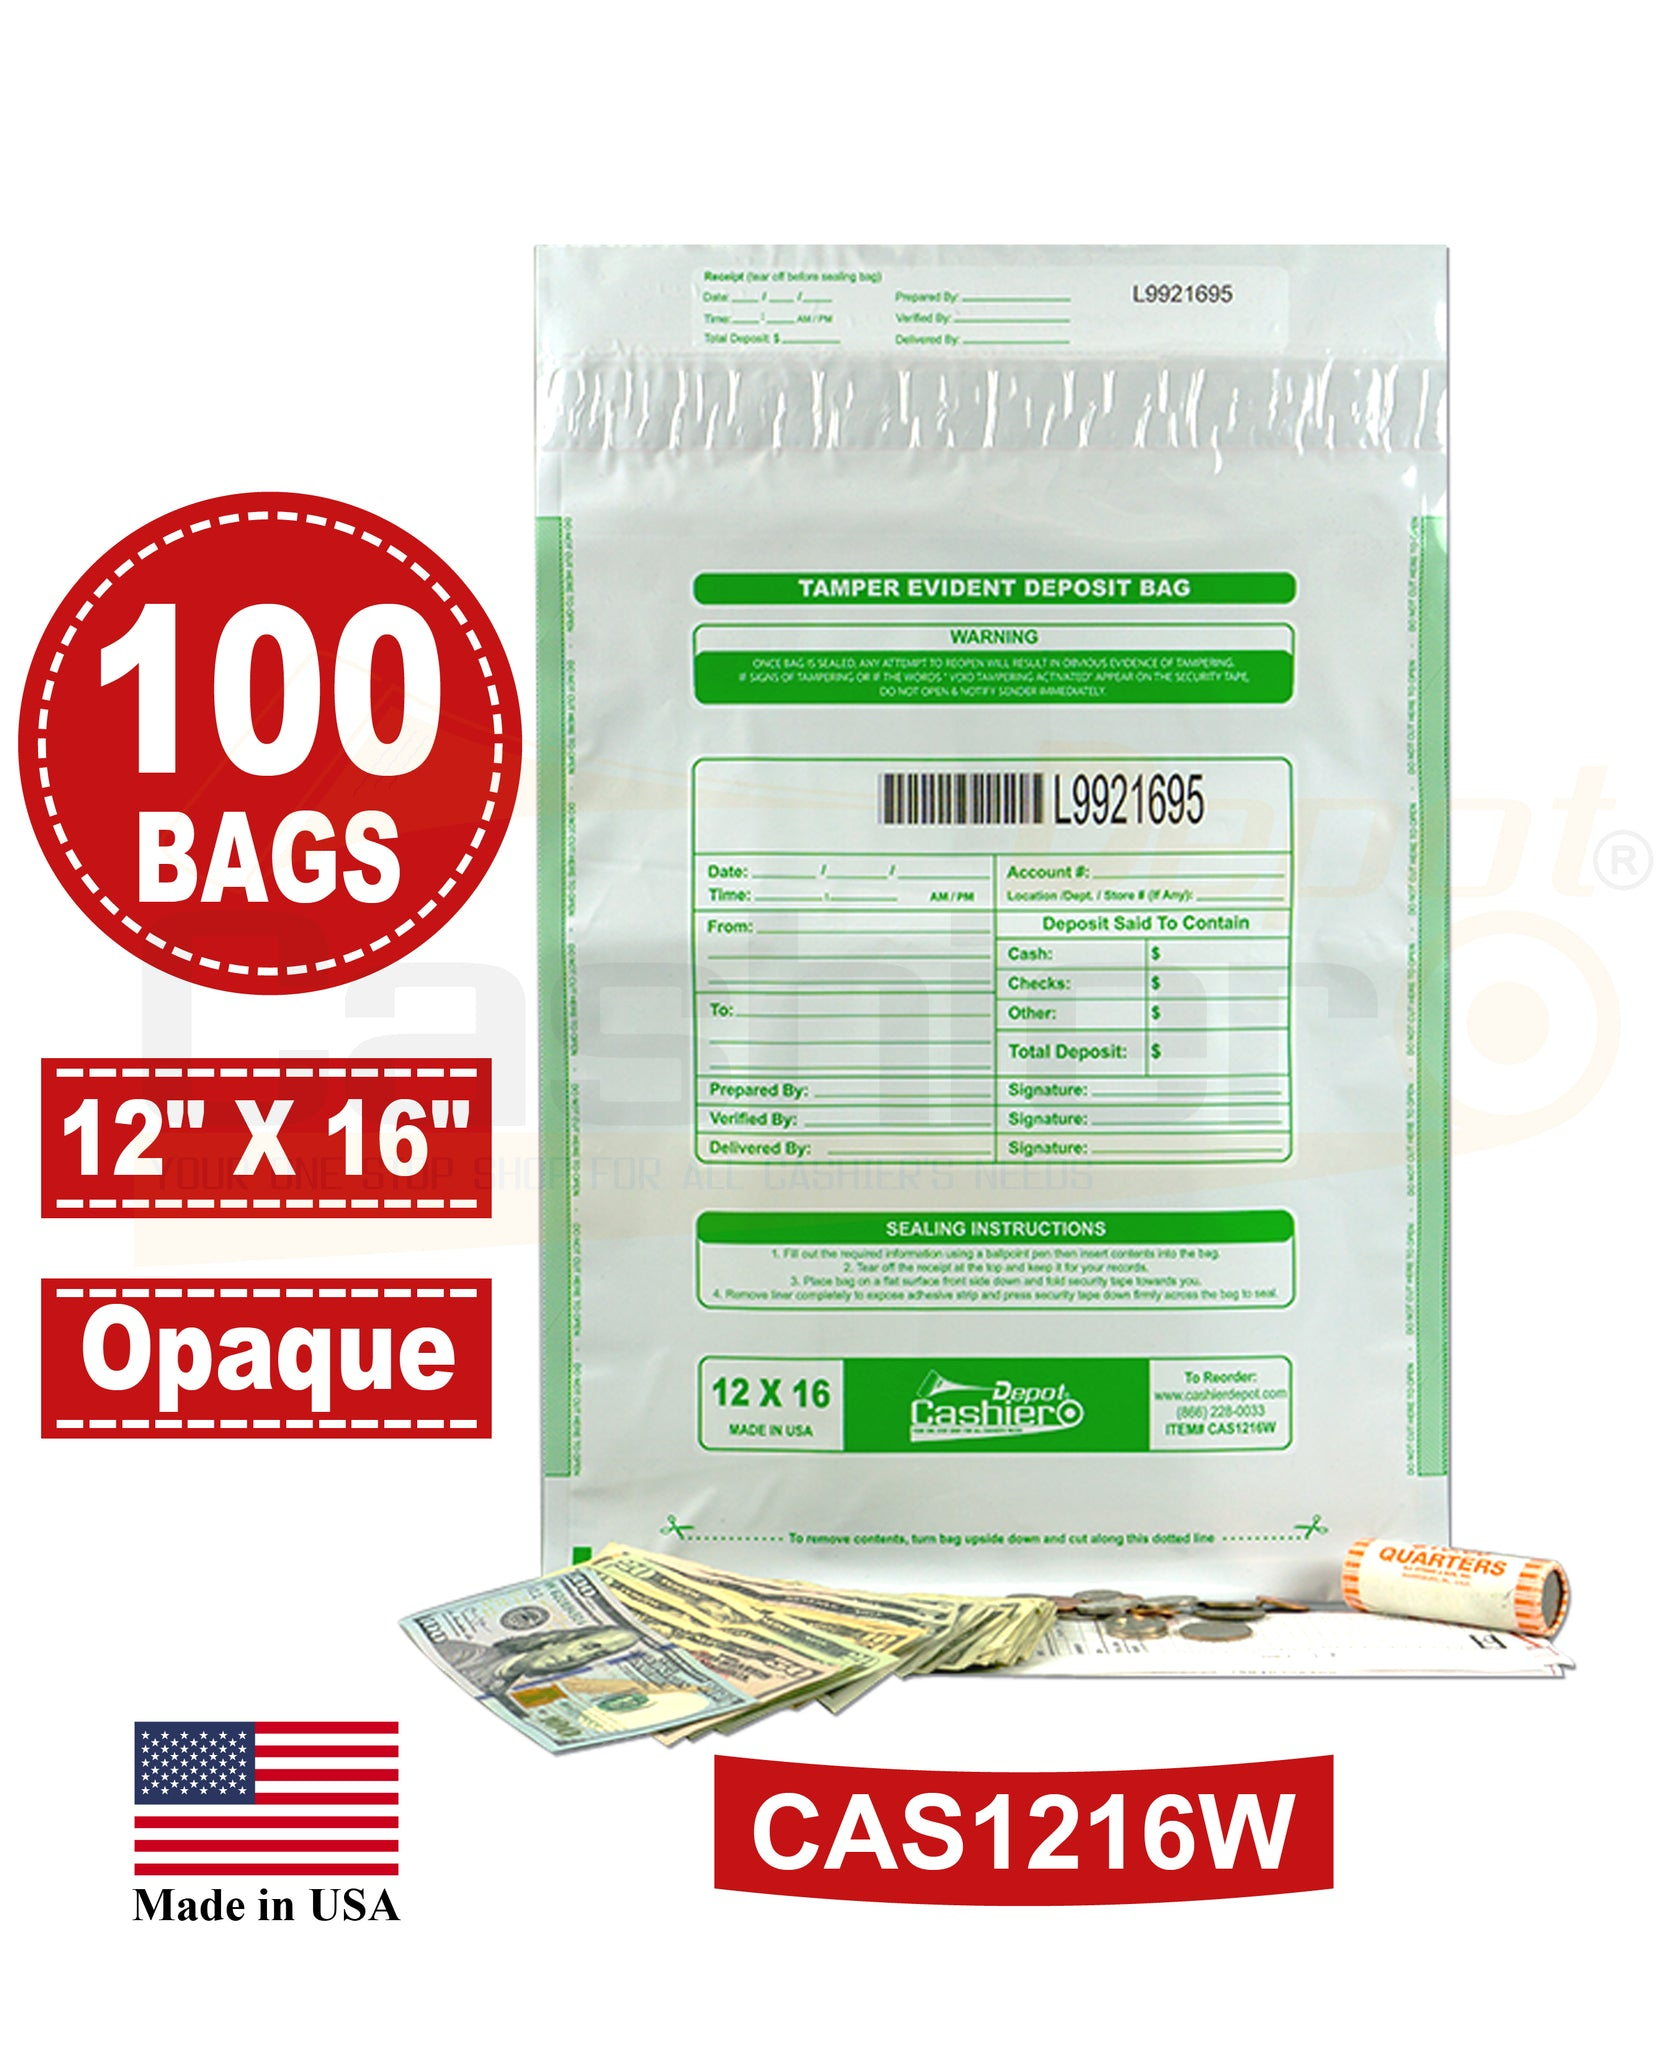 "Cashier Depot Tamper Evident Deposit Bags, 12"" x 16"" White, Serialized Numbering, Barcode, Press & Seal Void Closure Tape (100 Bags)"